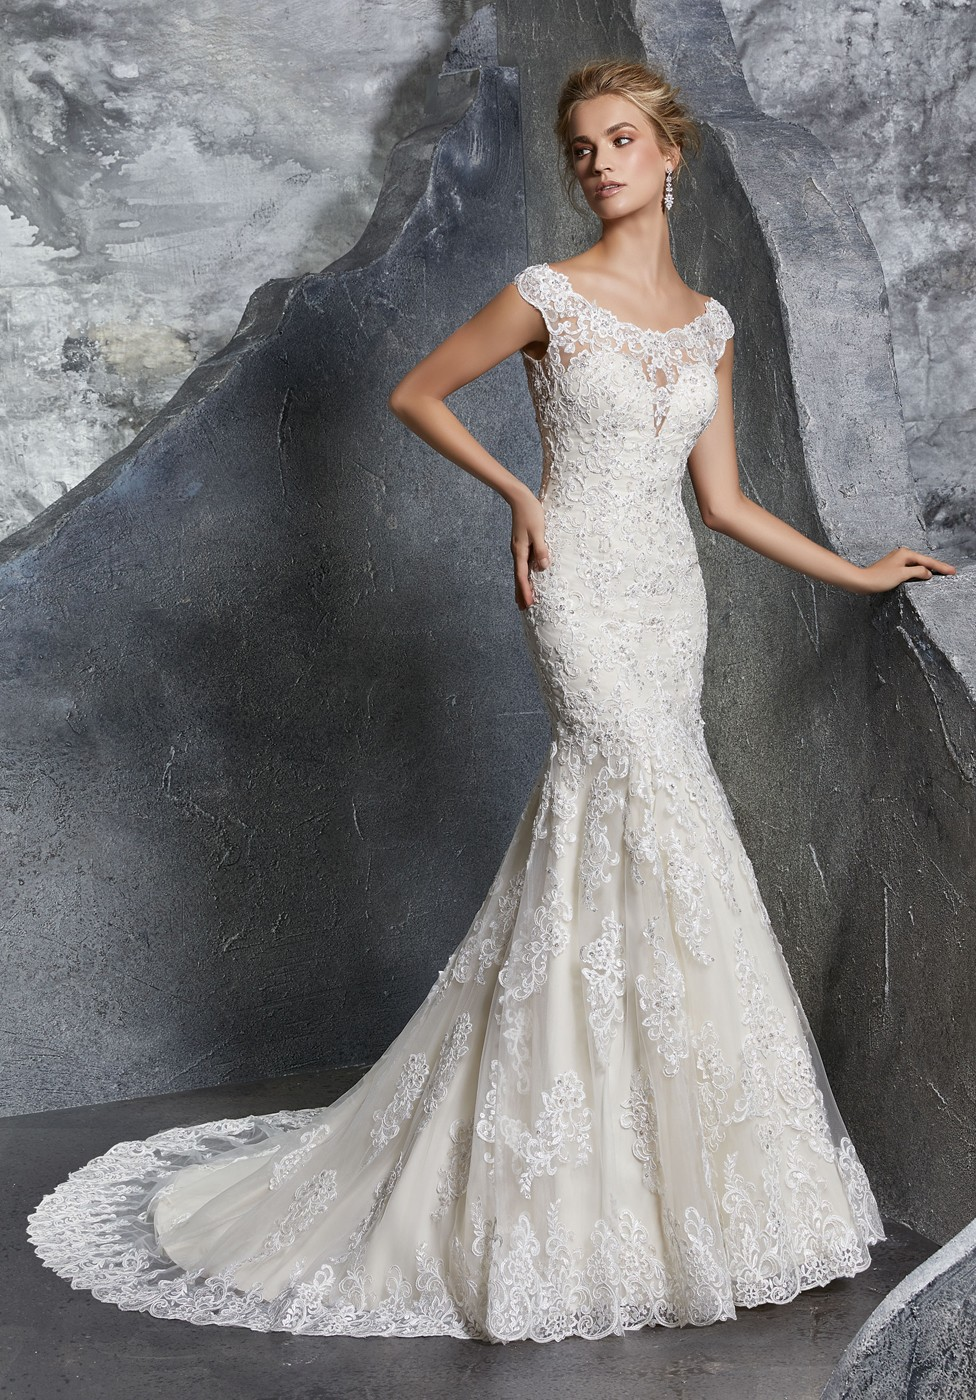 Mori lee keely style 8219 dress madamebridal mori lee dress style 8219 keely junglespirit Gallery